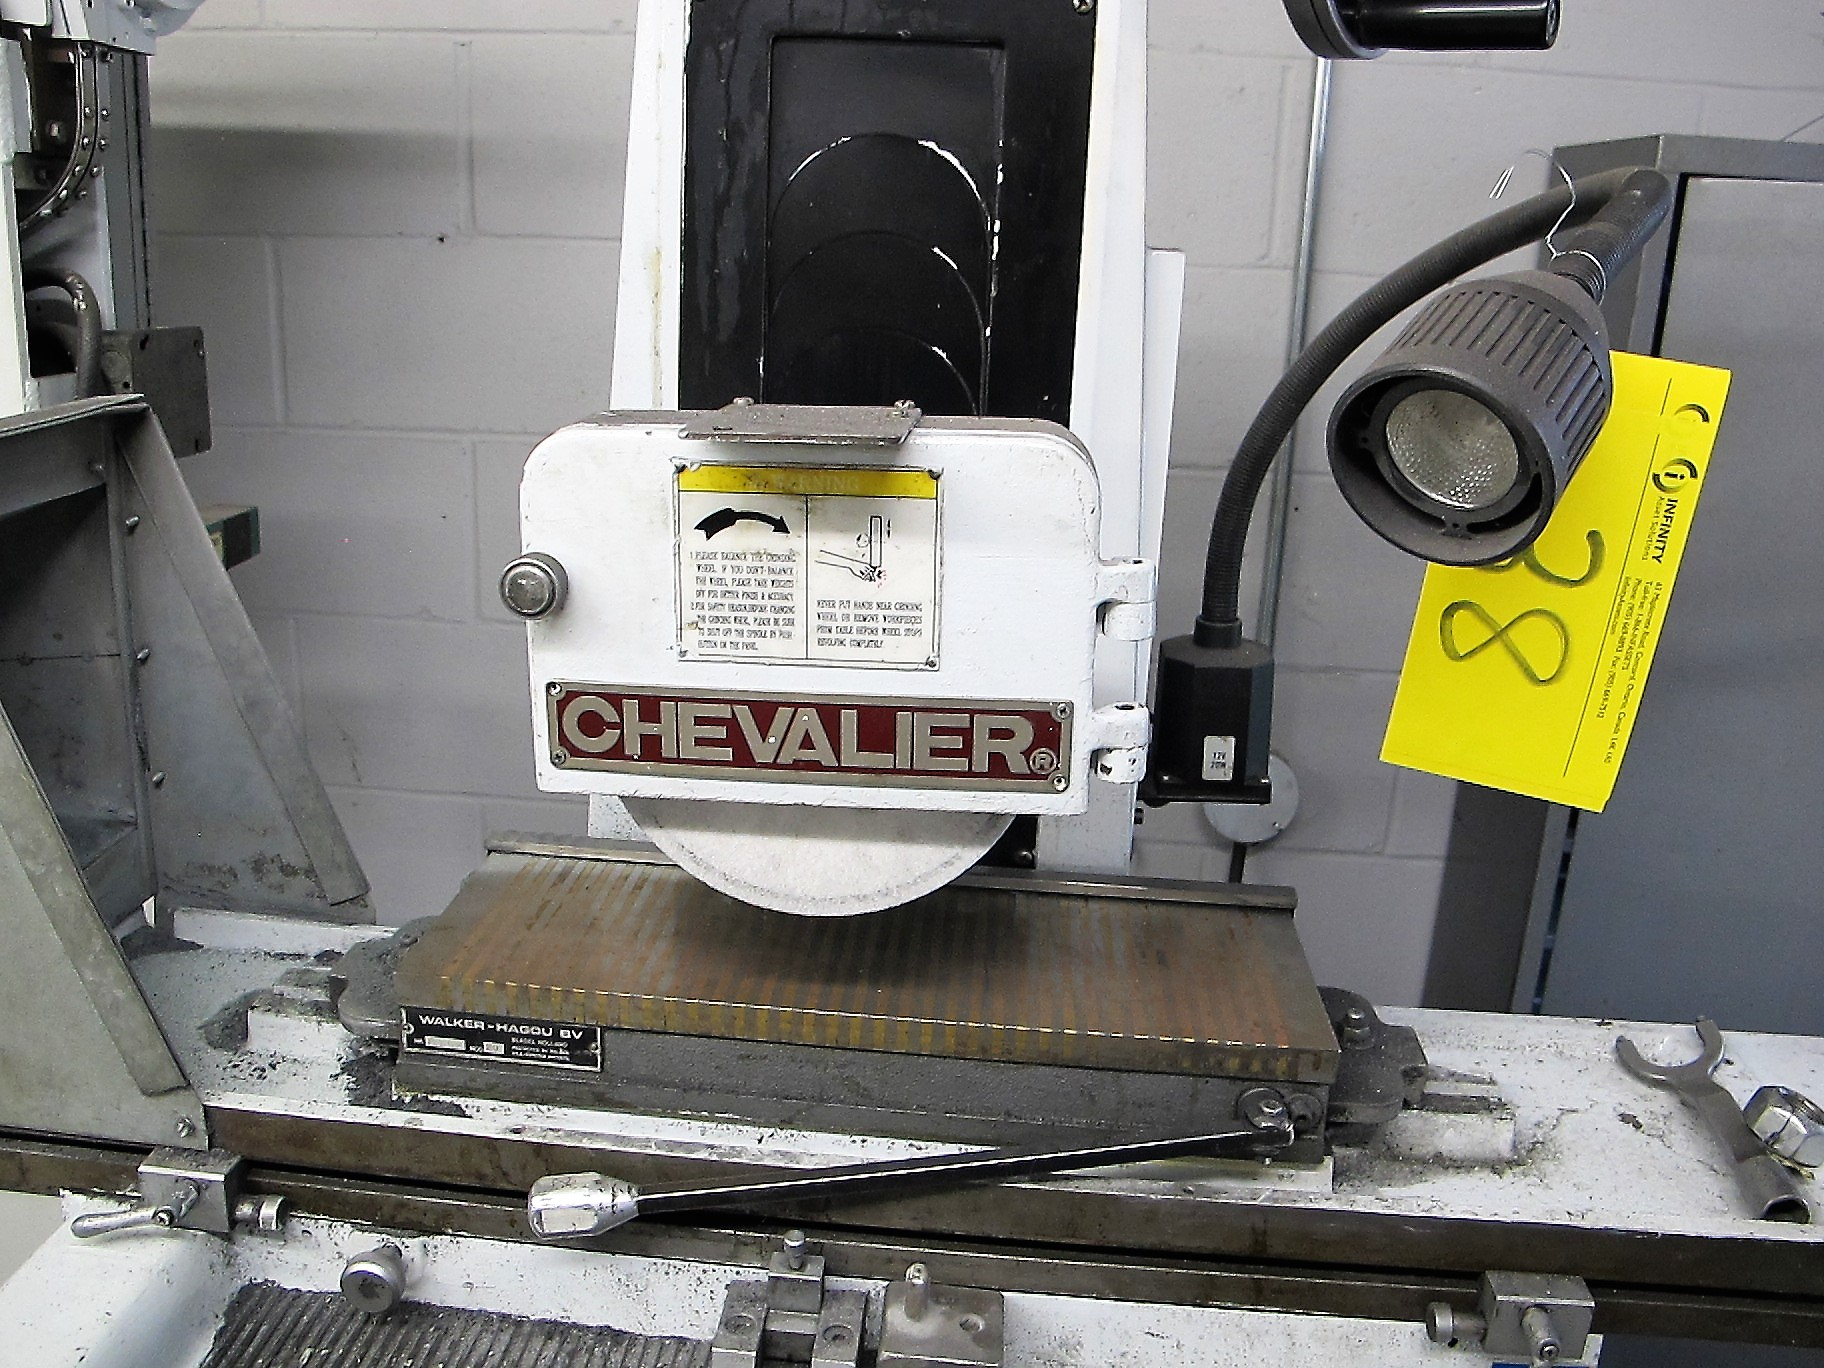 """CHEVALIER FSG-618M SURFACE GRINDER W/WALKER GAOU MODEL 20 MAGNETIC SURFACE PLATE, 6""""D X 18""""L - Image 2 of 5"""